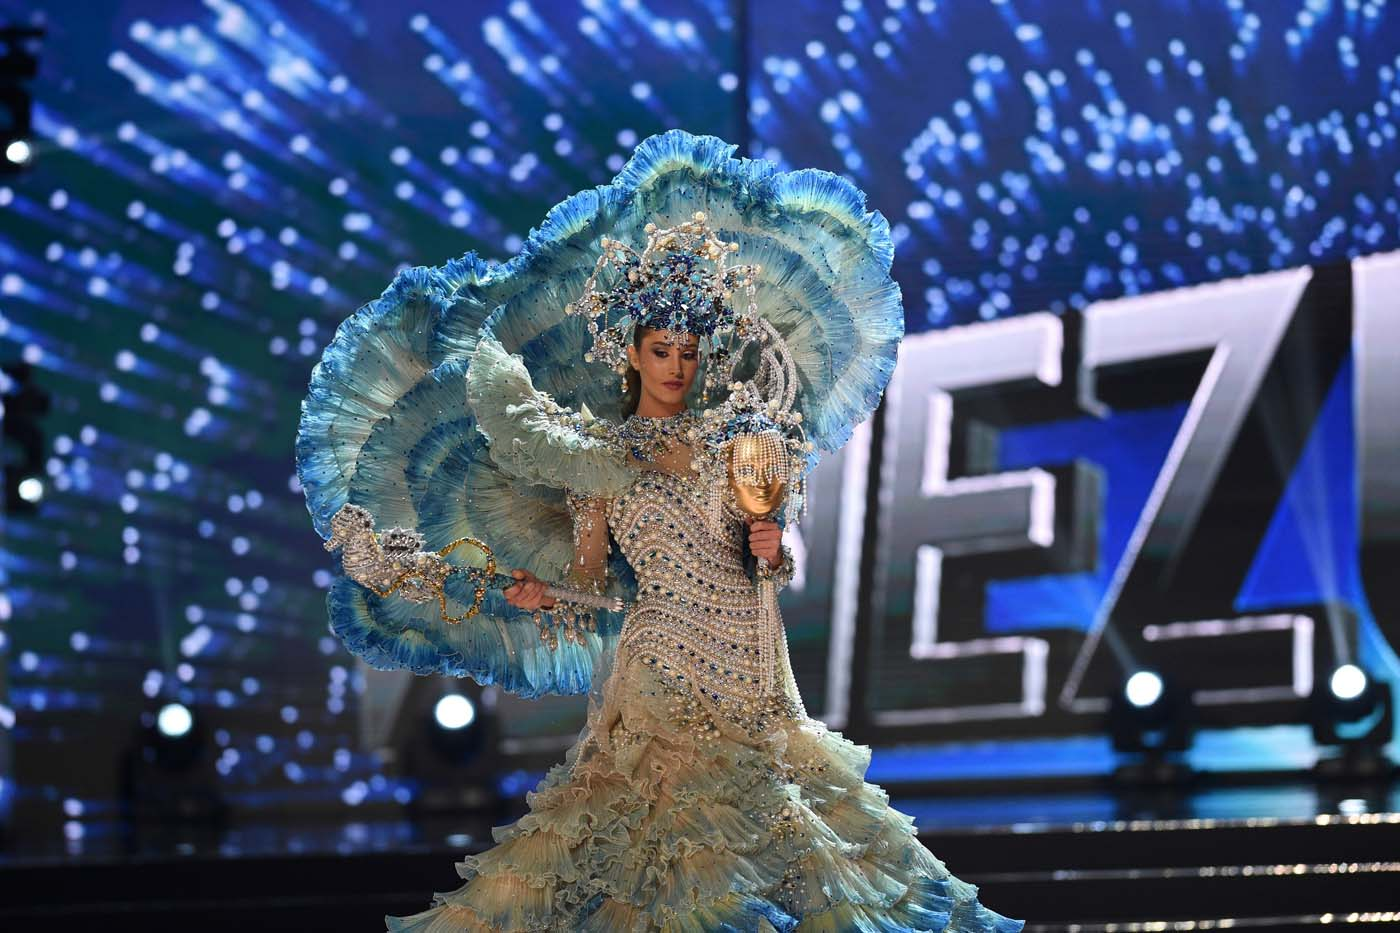 This photo taken on January 26, 2017 shows Miss Universe contestant Mariam Habach of Venezuela presents during the national costume and preliminary competition of the Miss Universe pageant at the Mall of Asia arena in Manila. / AFP PHOTO / TED ALJIBE